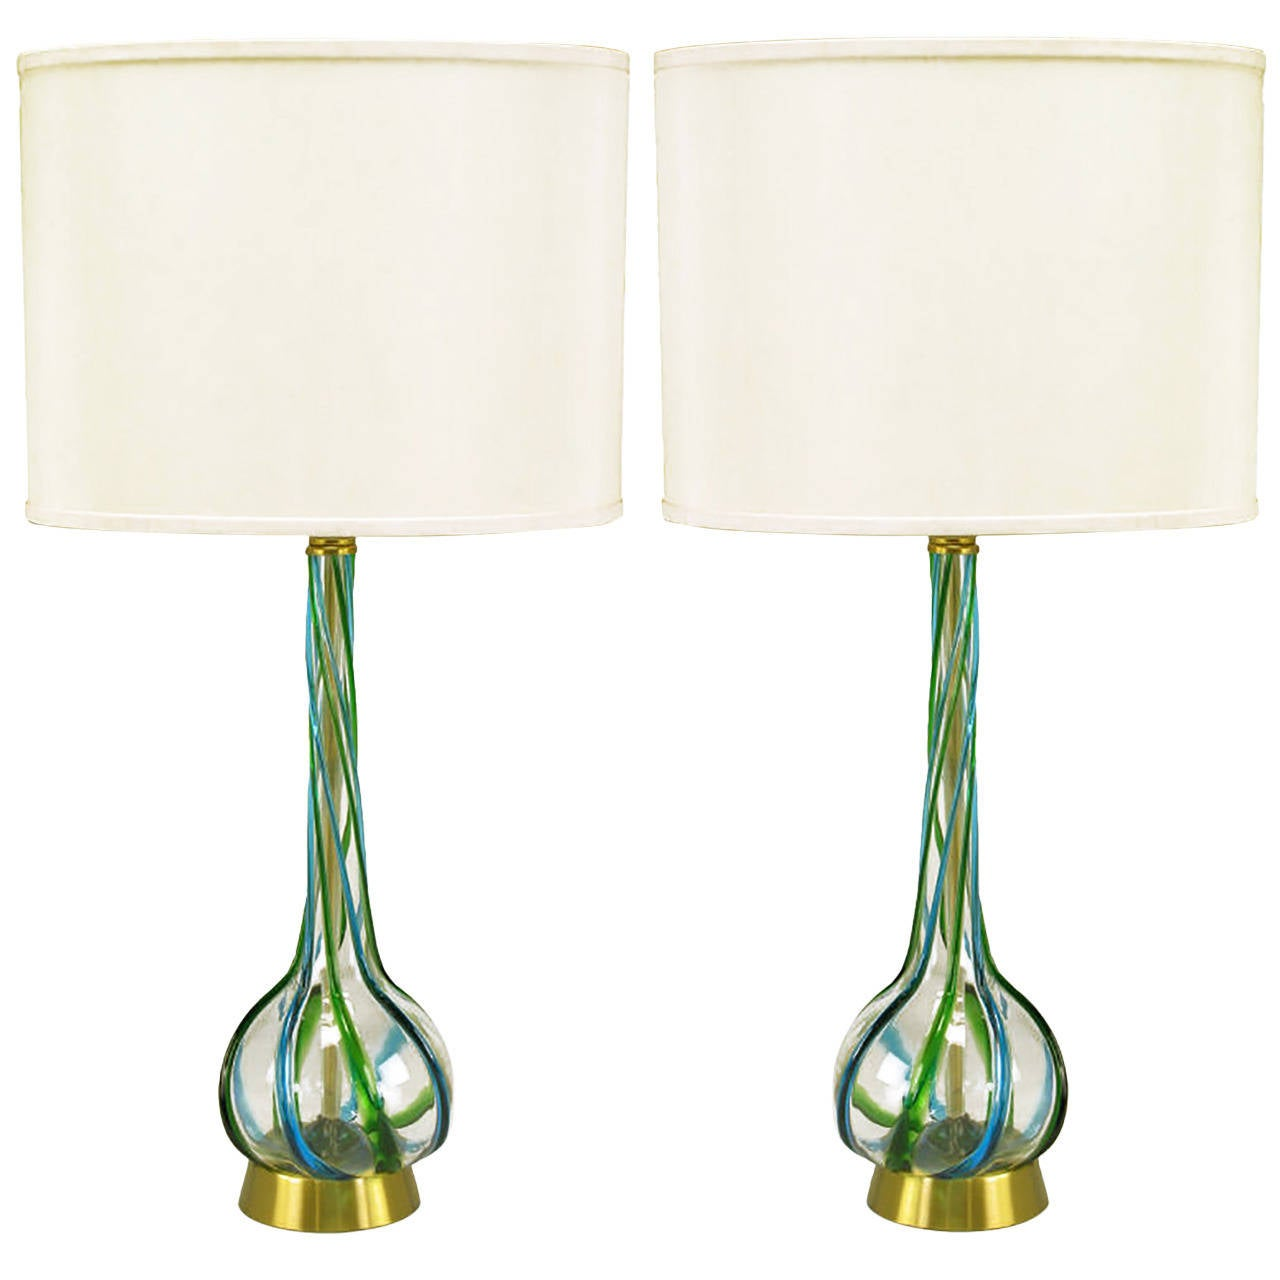 of murano blue and green ribbon glass table lamps for sale at 1stdibs. Black Bedroom Furniture Sets. Home Design Ideas